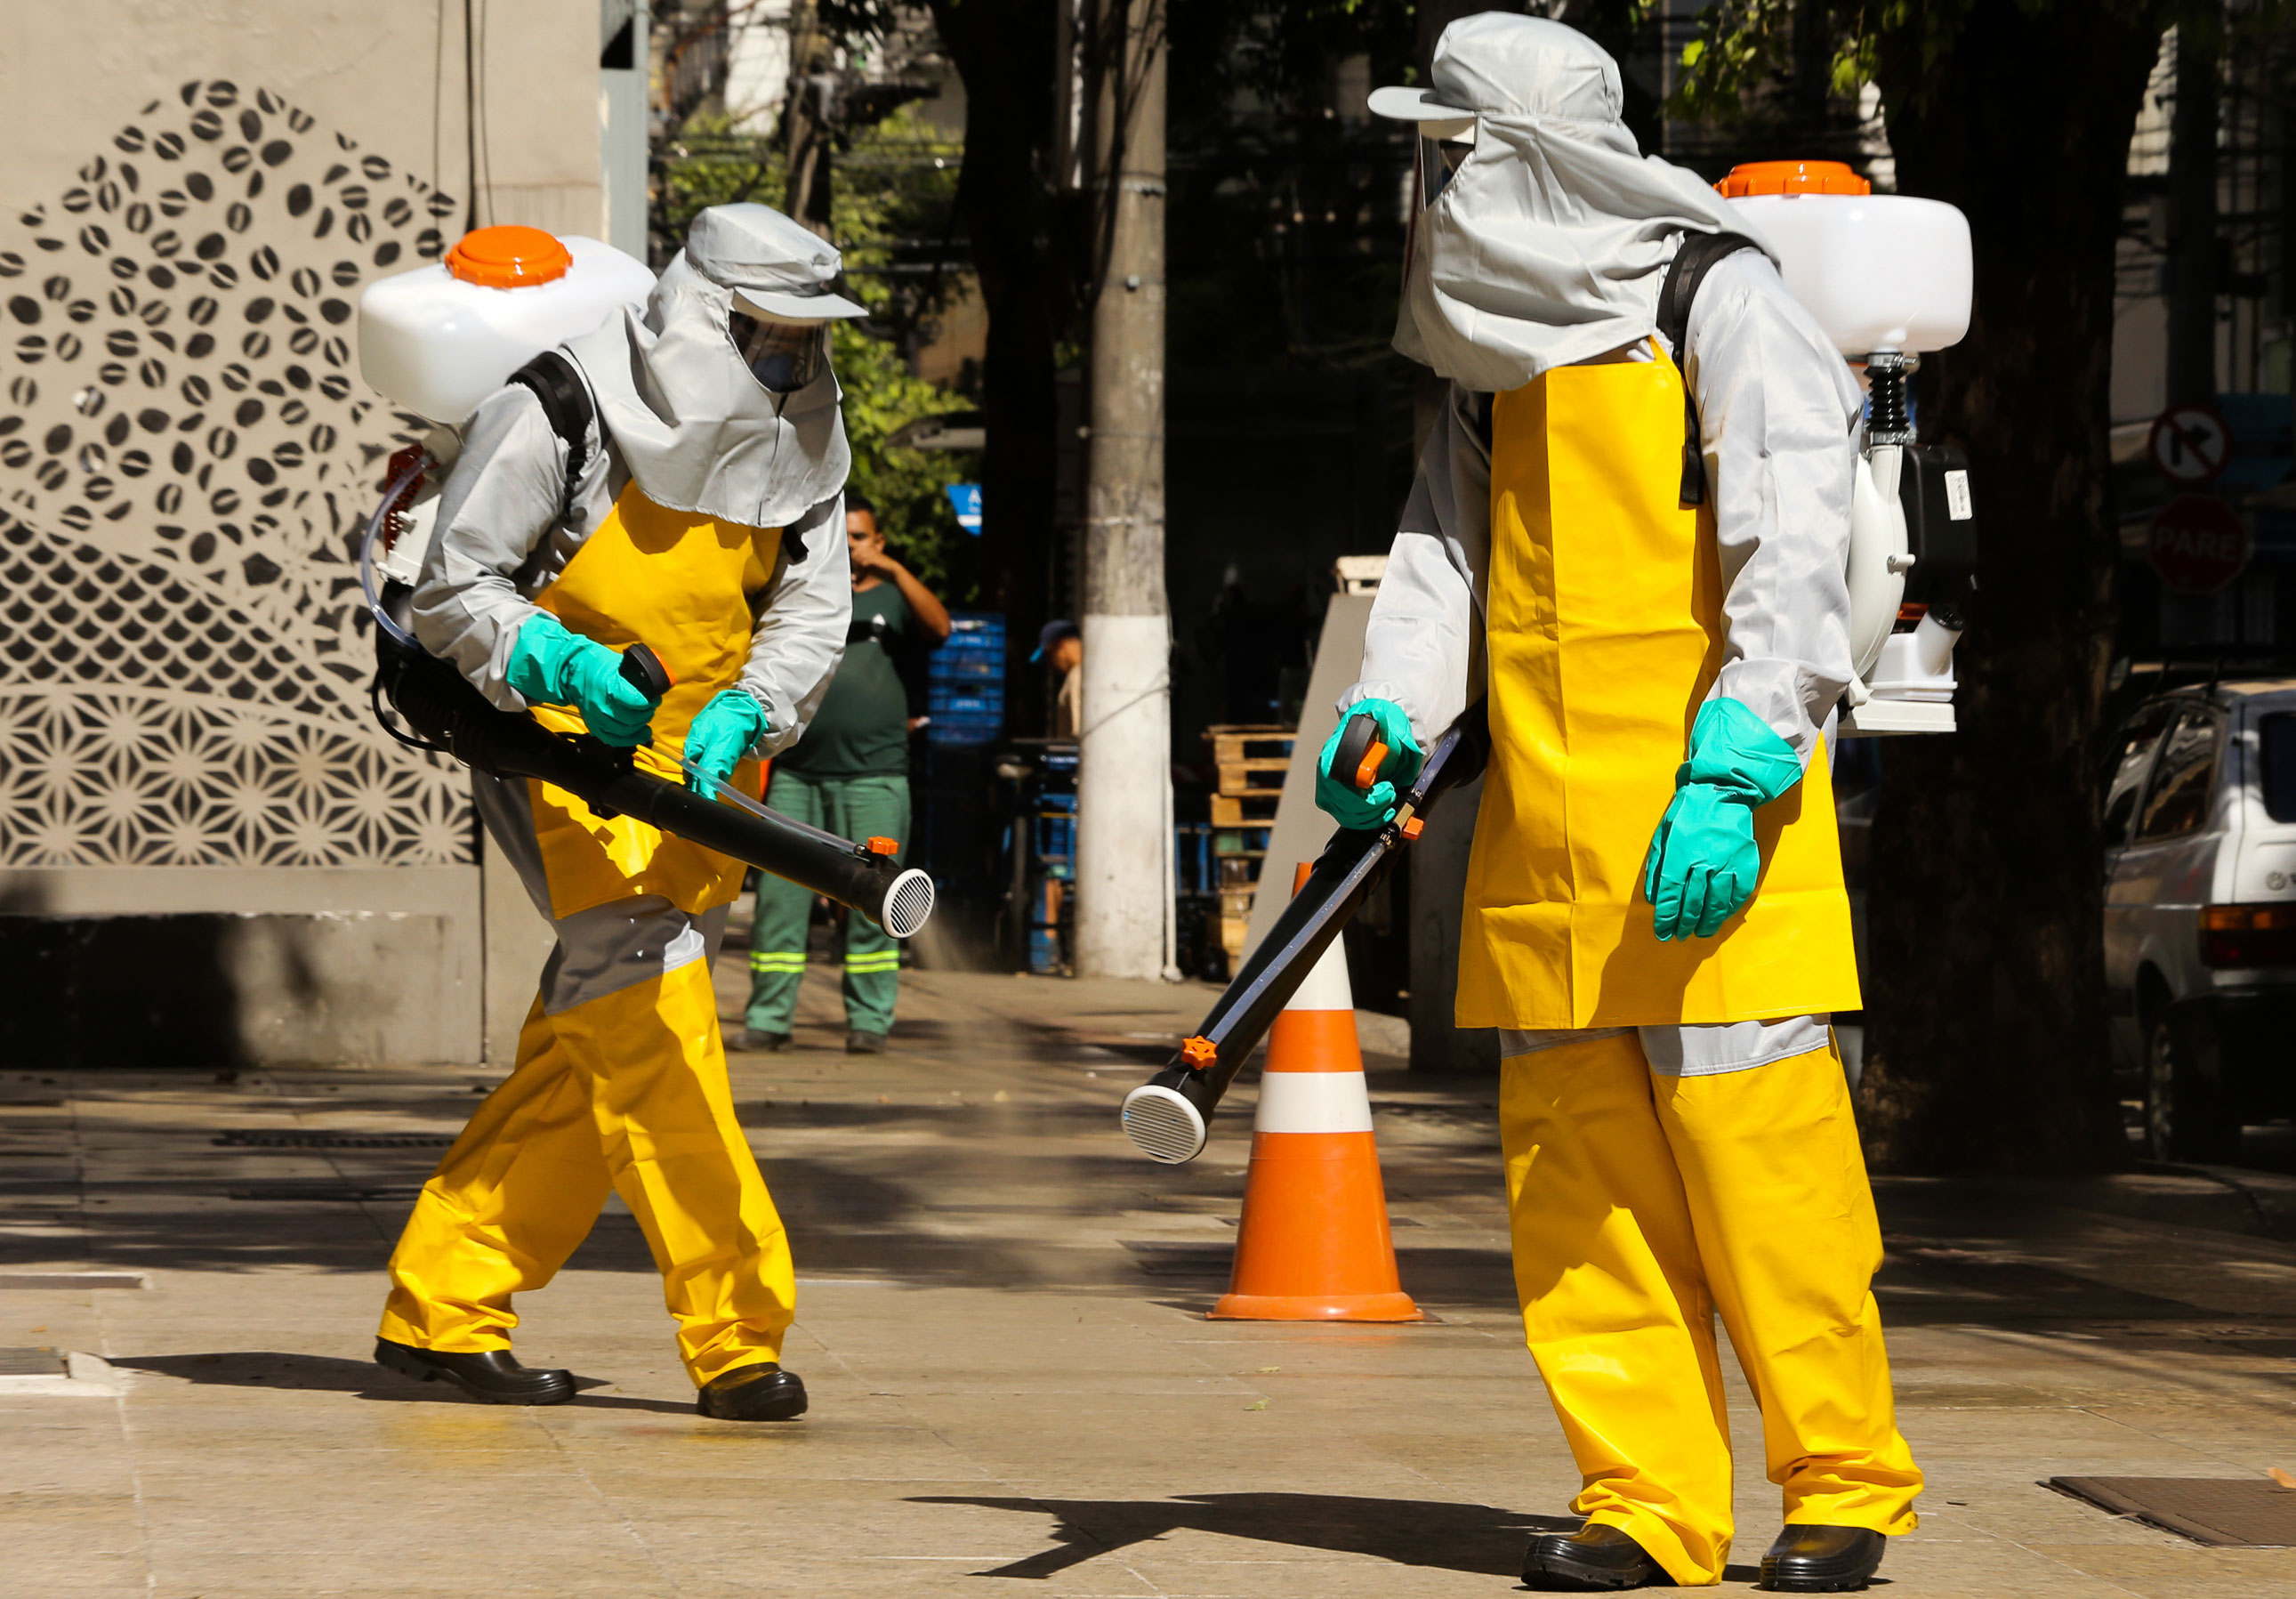 Members of a cleaning crew disinfect a neighborhood in Niteroi, Brazil on March 23.